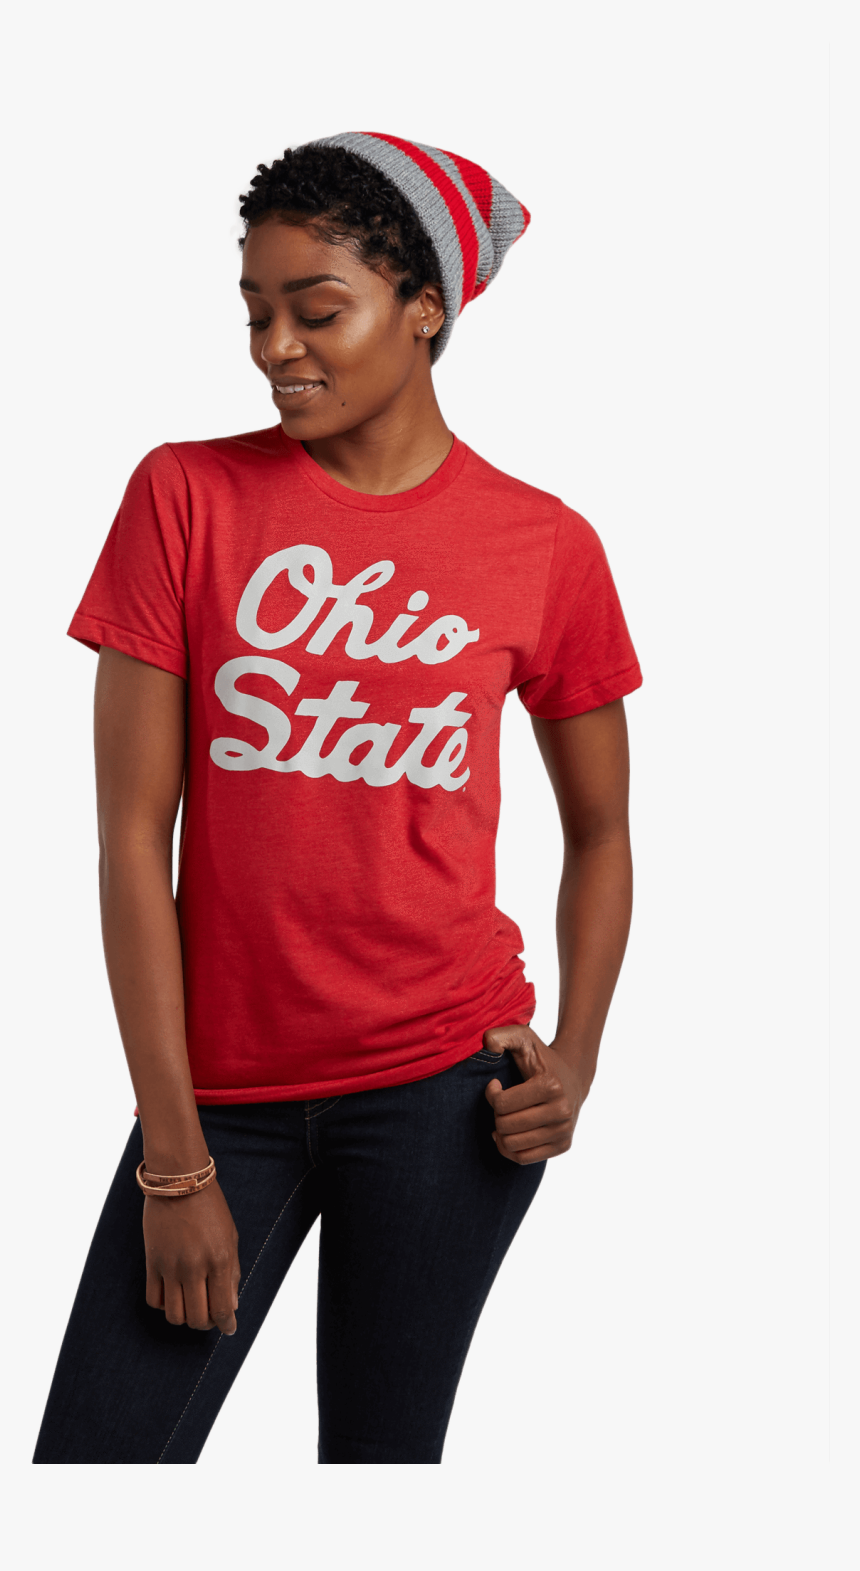 Red Hot Chili Peppers Shirt Kohls, HD Png Download, Free Download